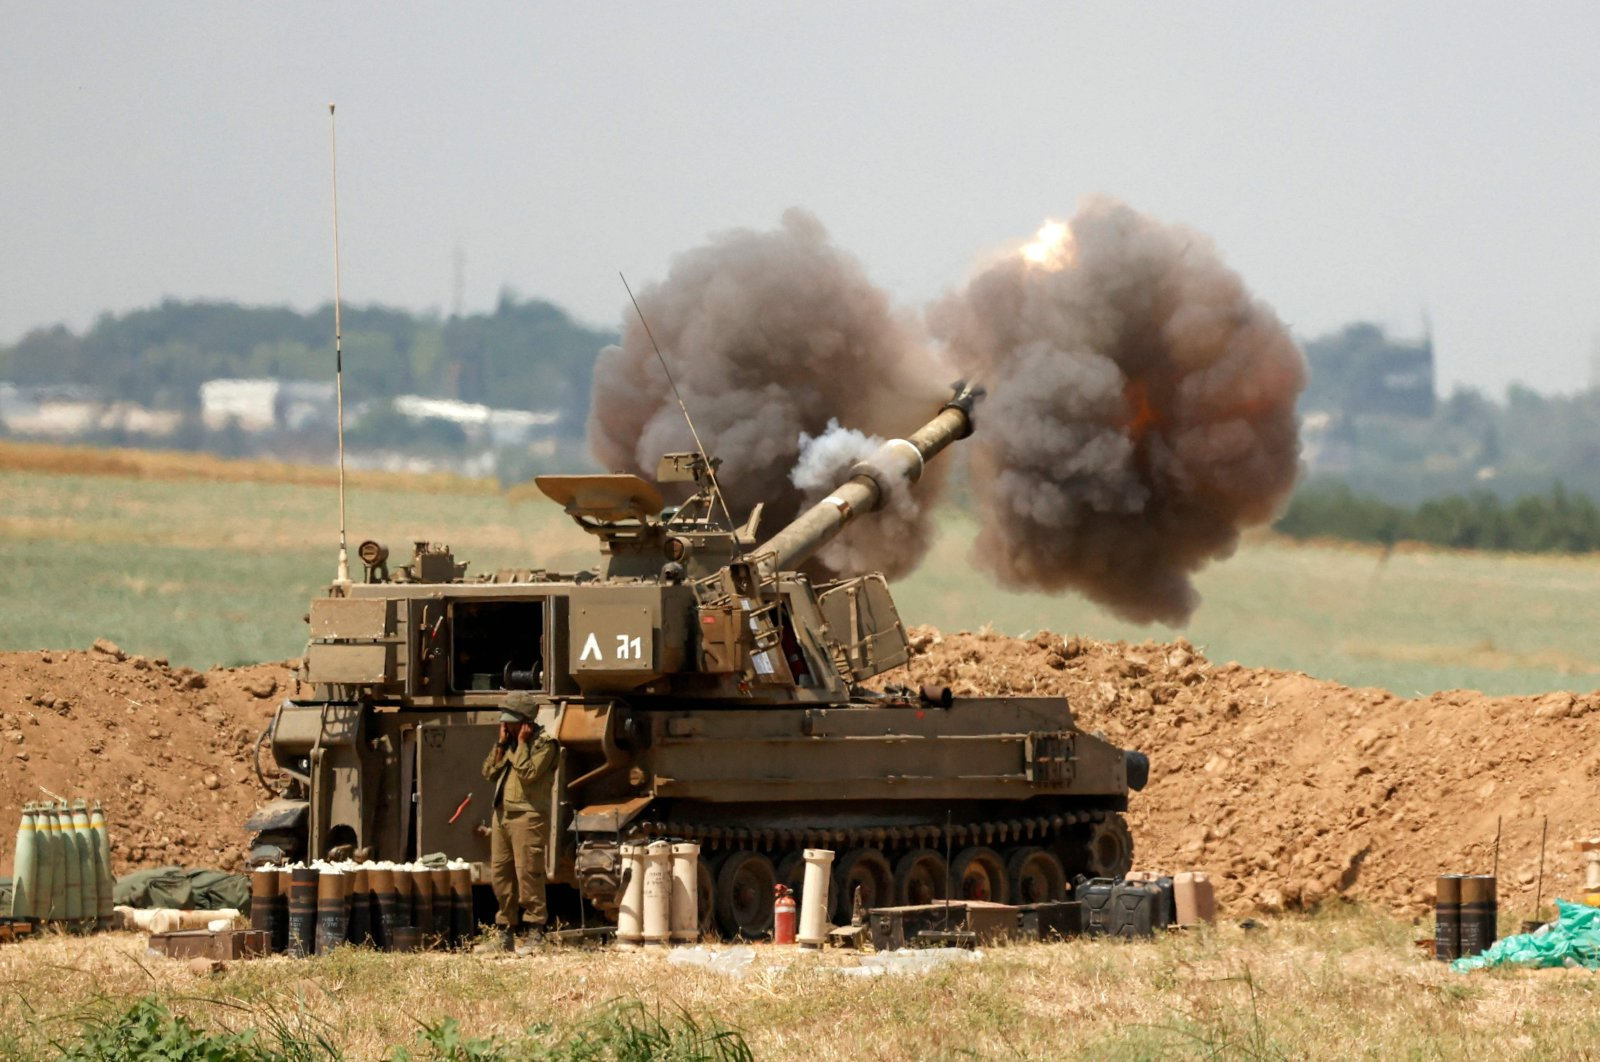 An Israeli 155mm self-propelled howitzer fires artillery shells towards the Gaza Strip from their position along the border with the Palestinian enclave, Israel, May 20, 2021. (AFP Photo)